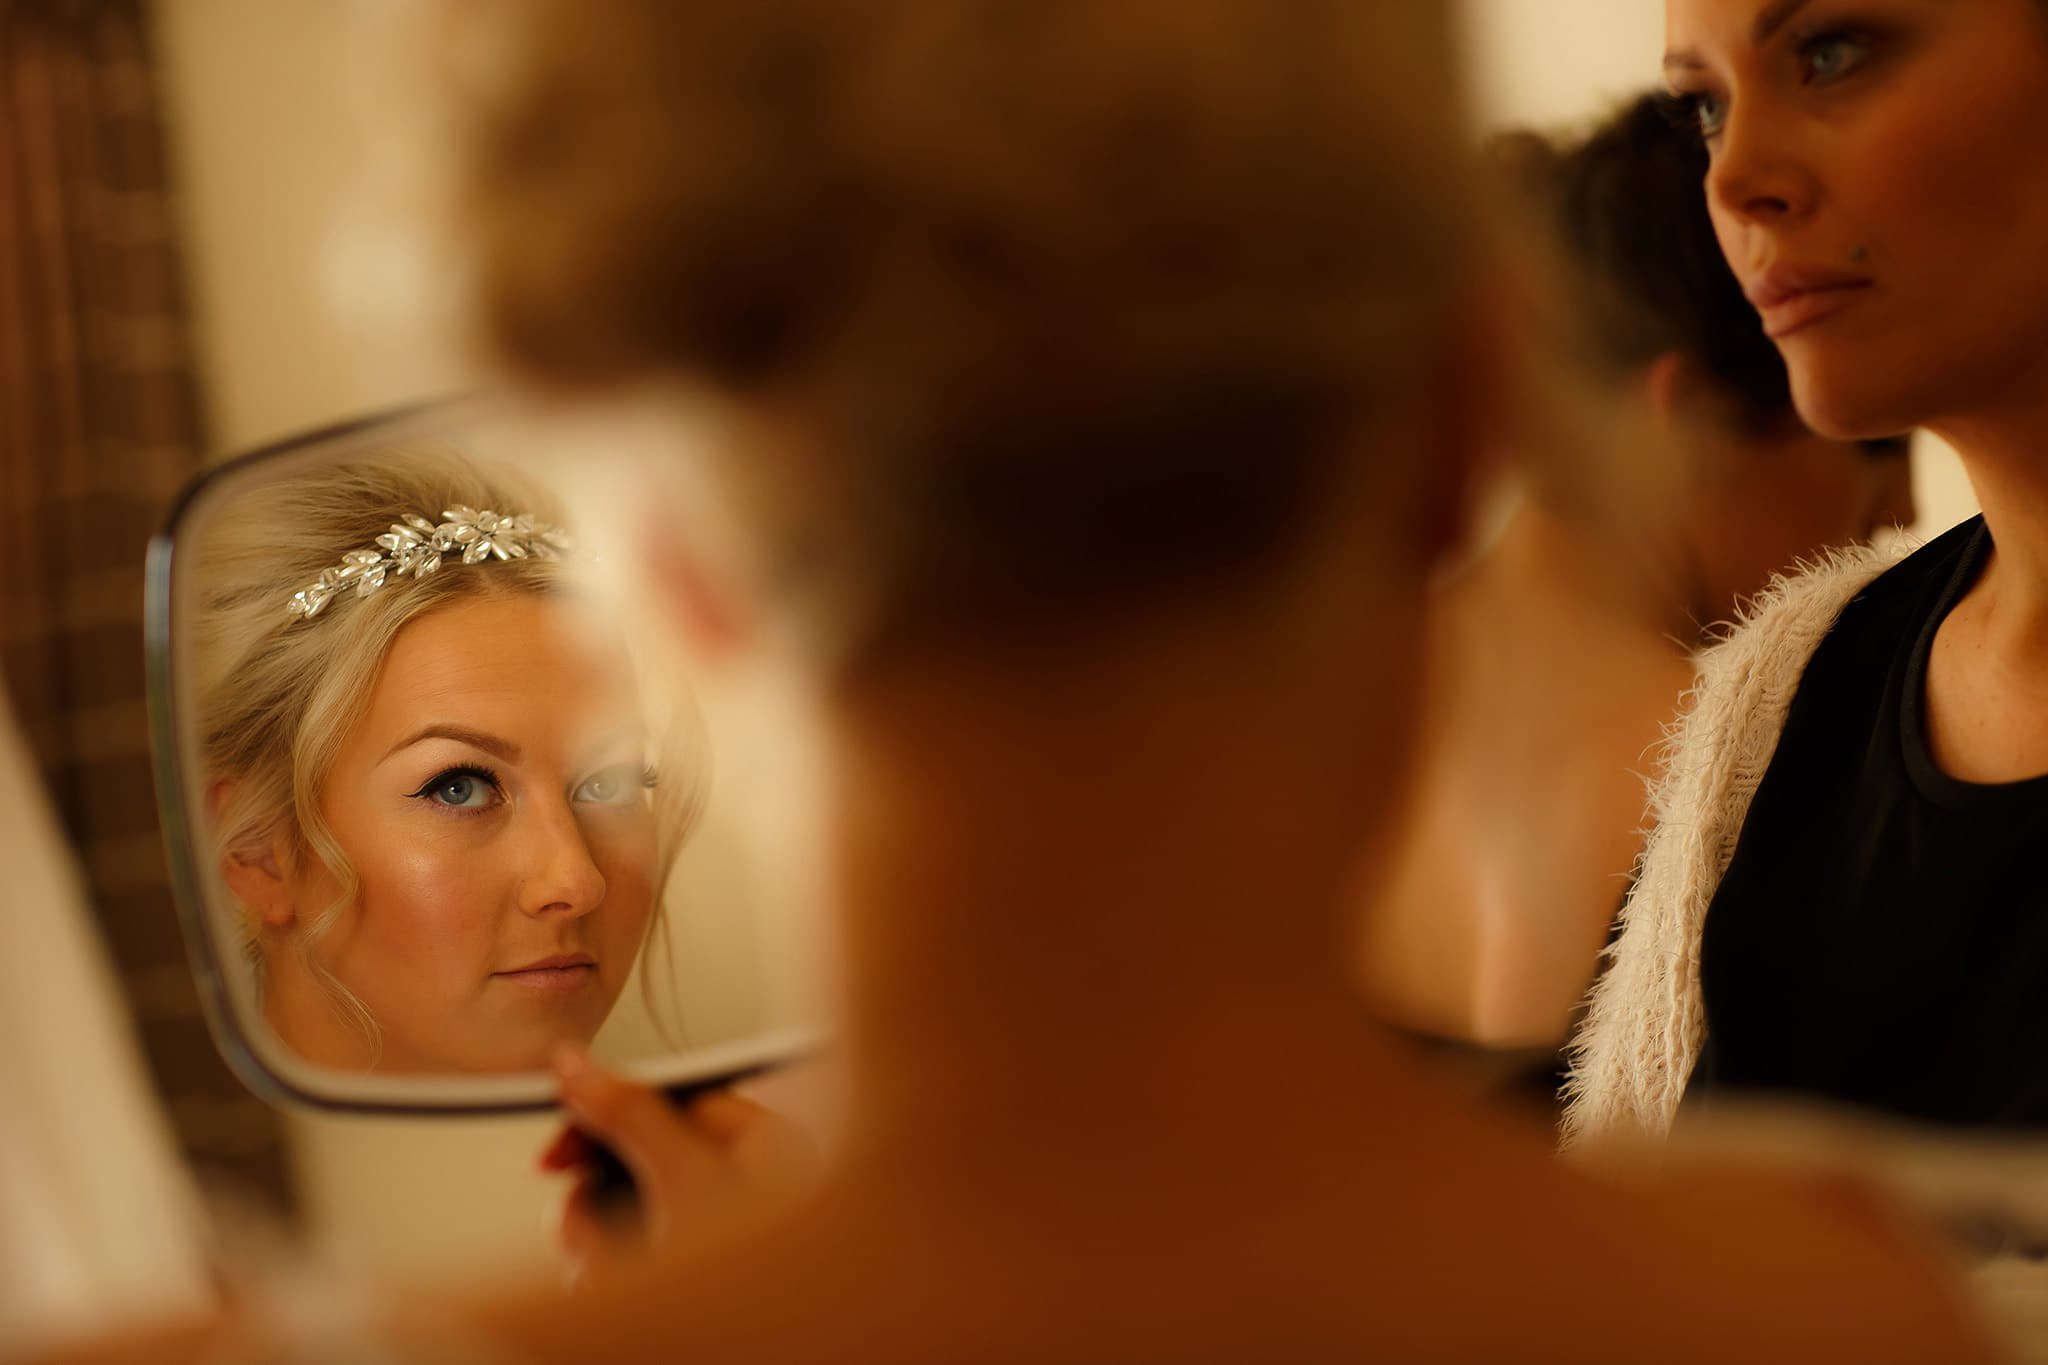 bride looking at herself in a small mirror